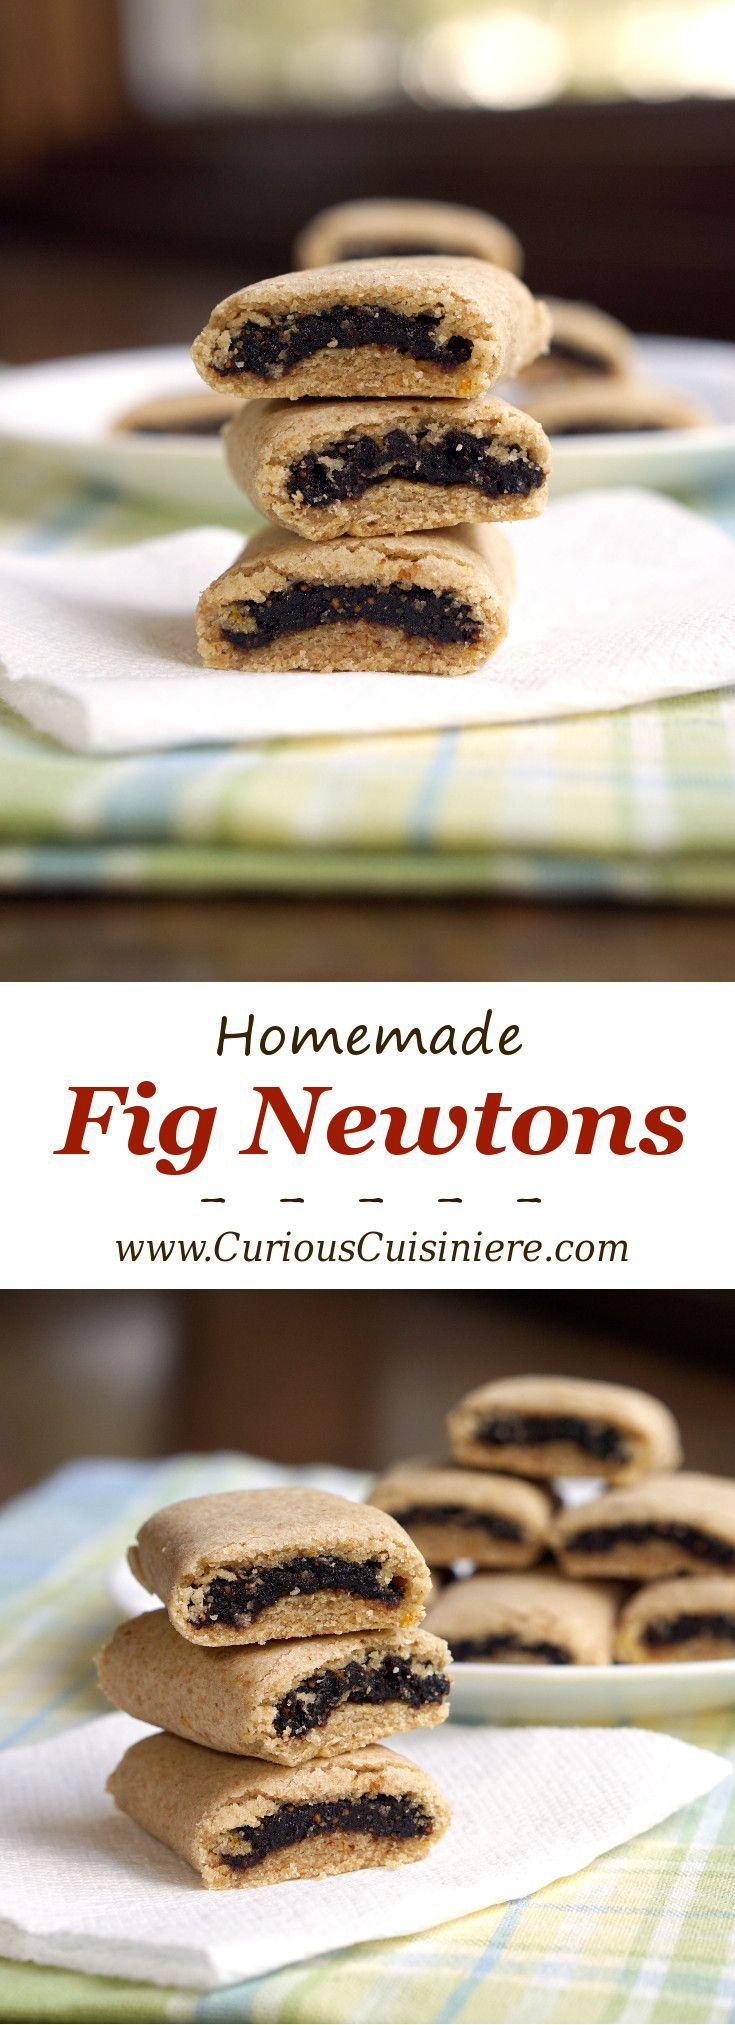 Our easy Fig Newton recipe brings the deep sweetness of figs together with a tender cookie crust.   www.CuriousCuisiniere.com